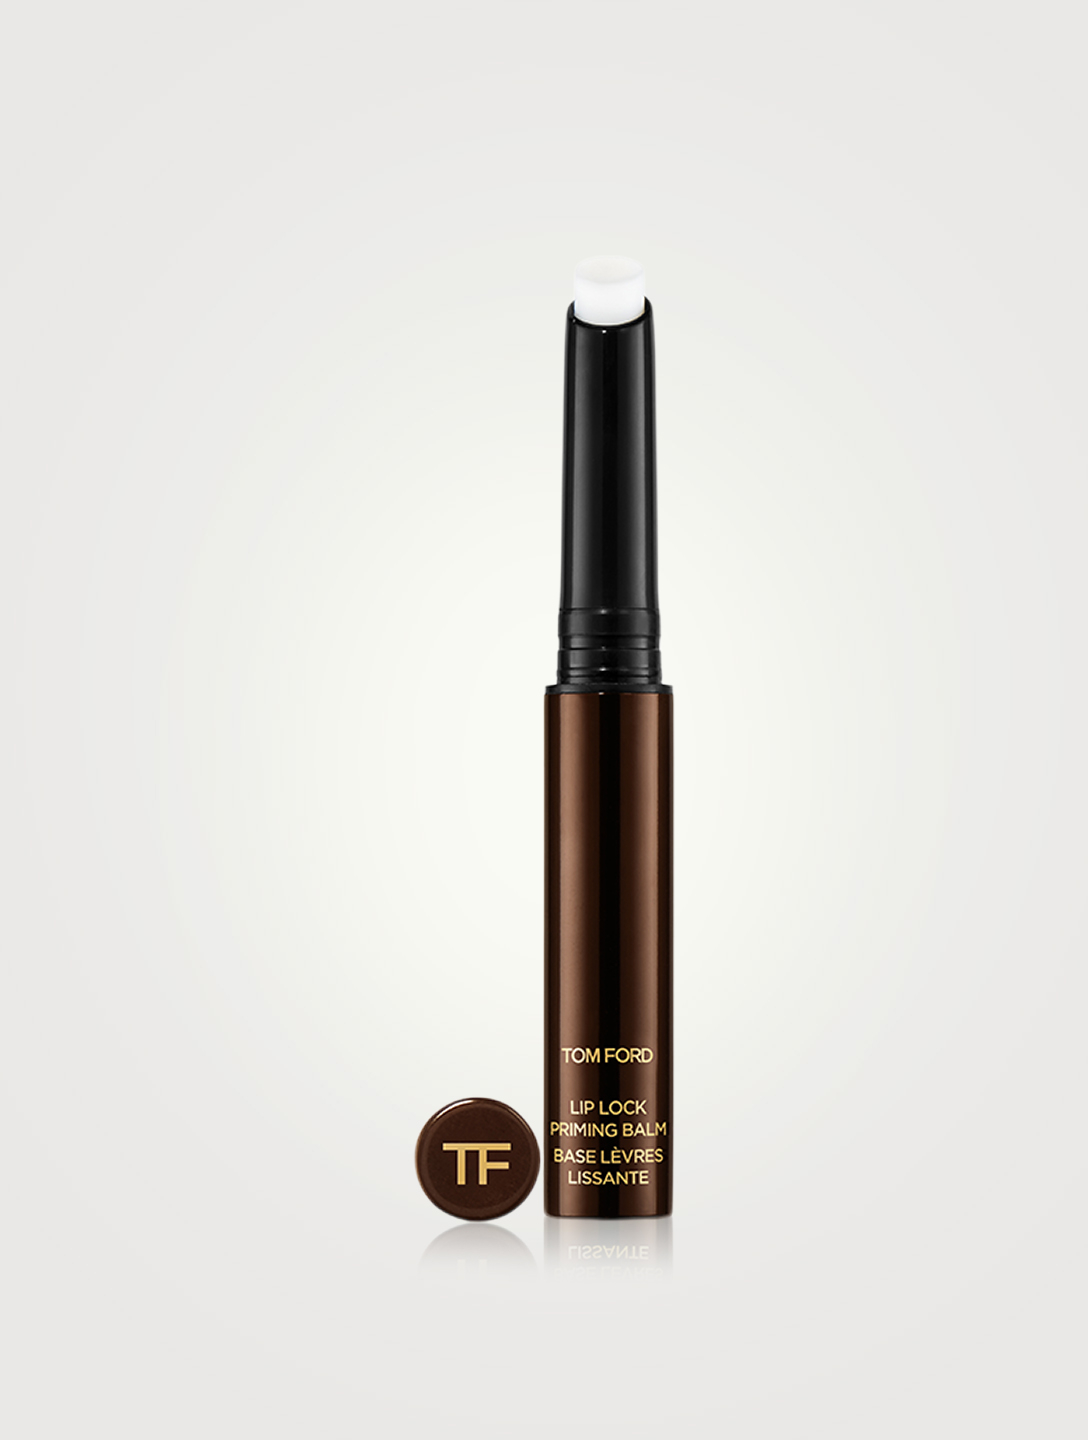 TOM FORD Lip Lock Priming Balm Beauty